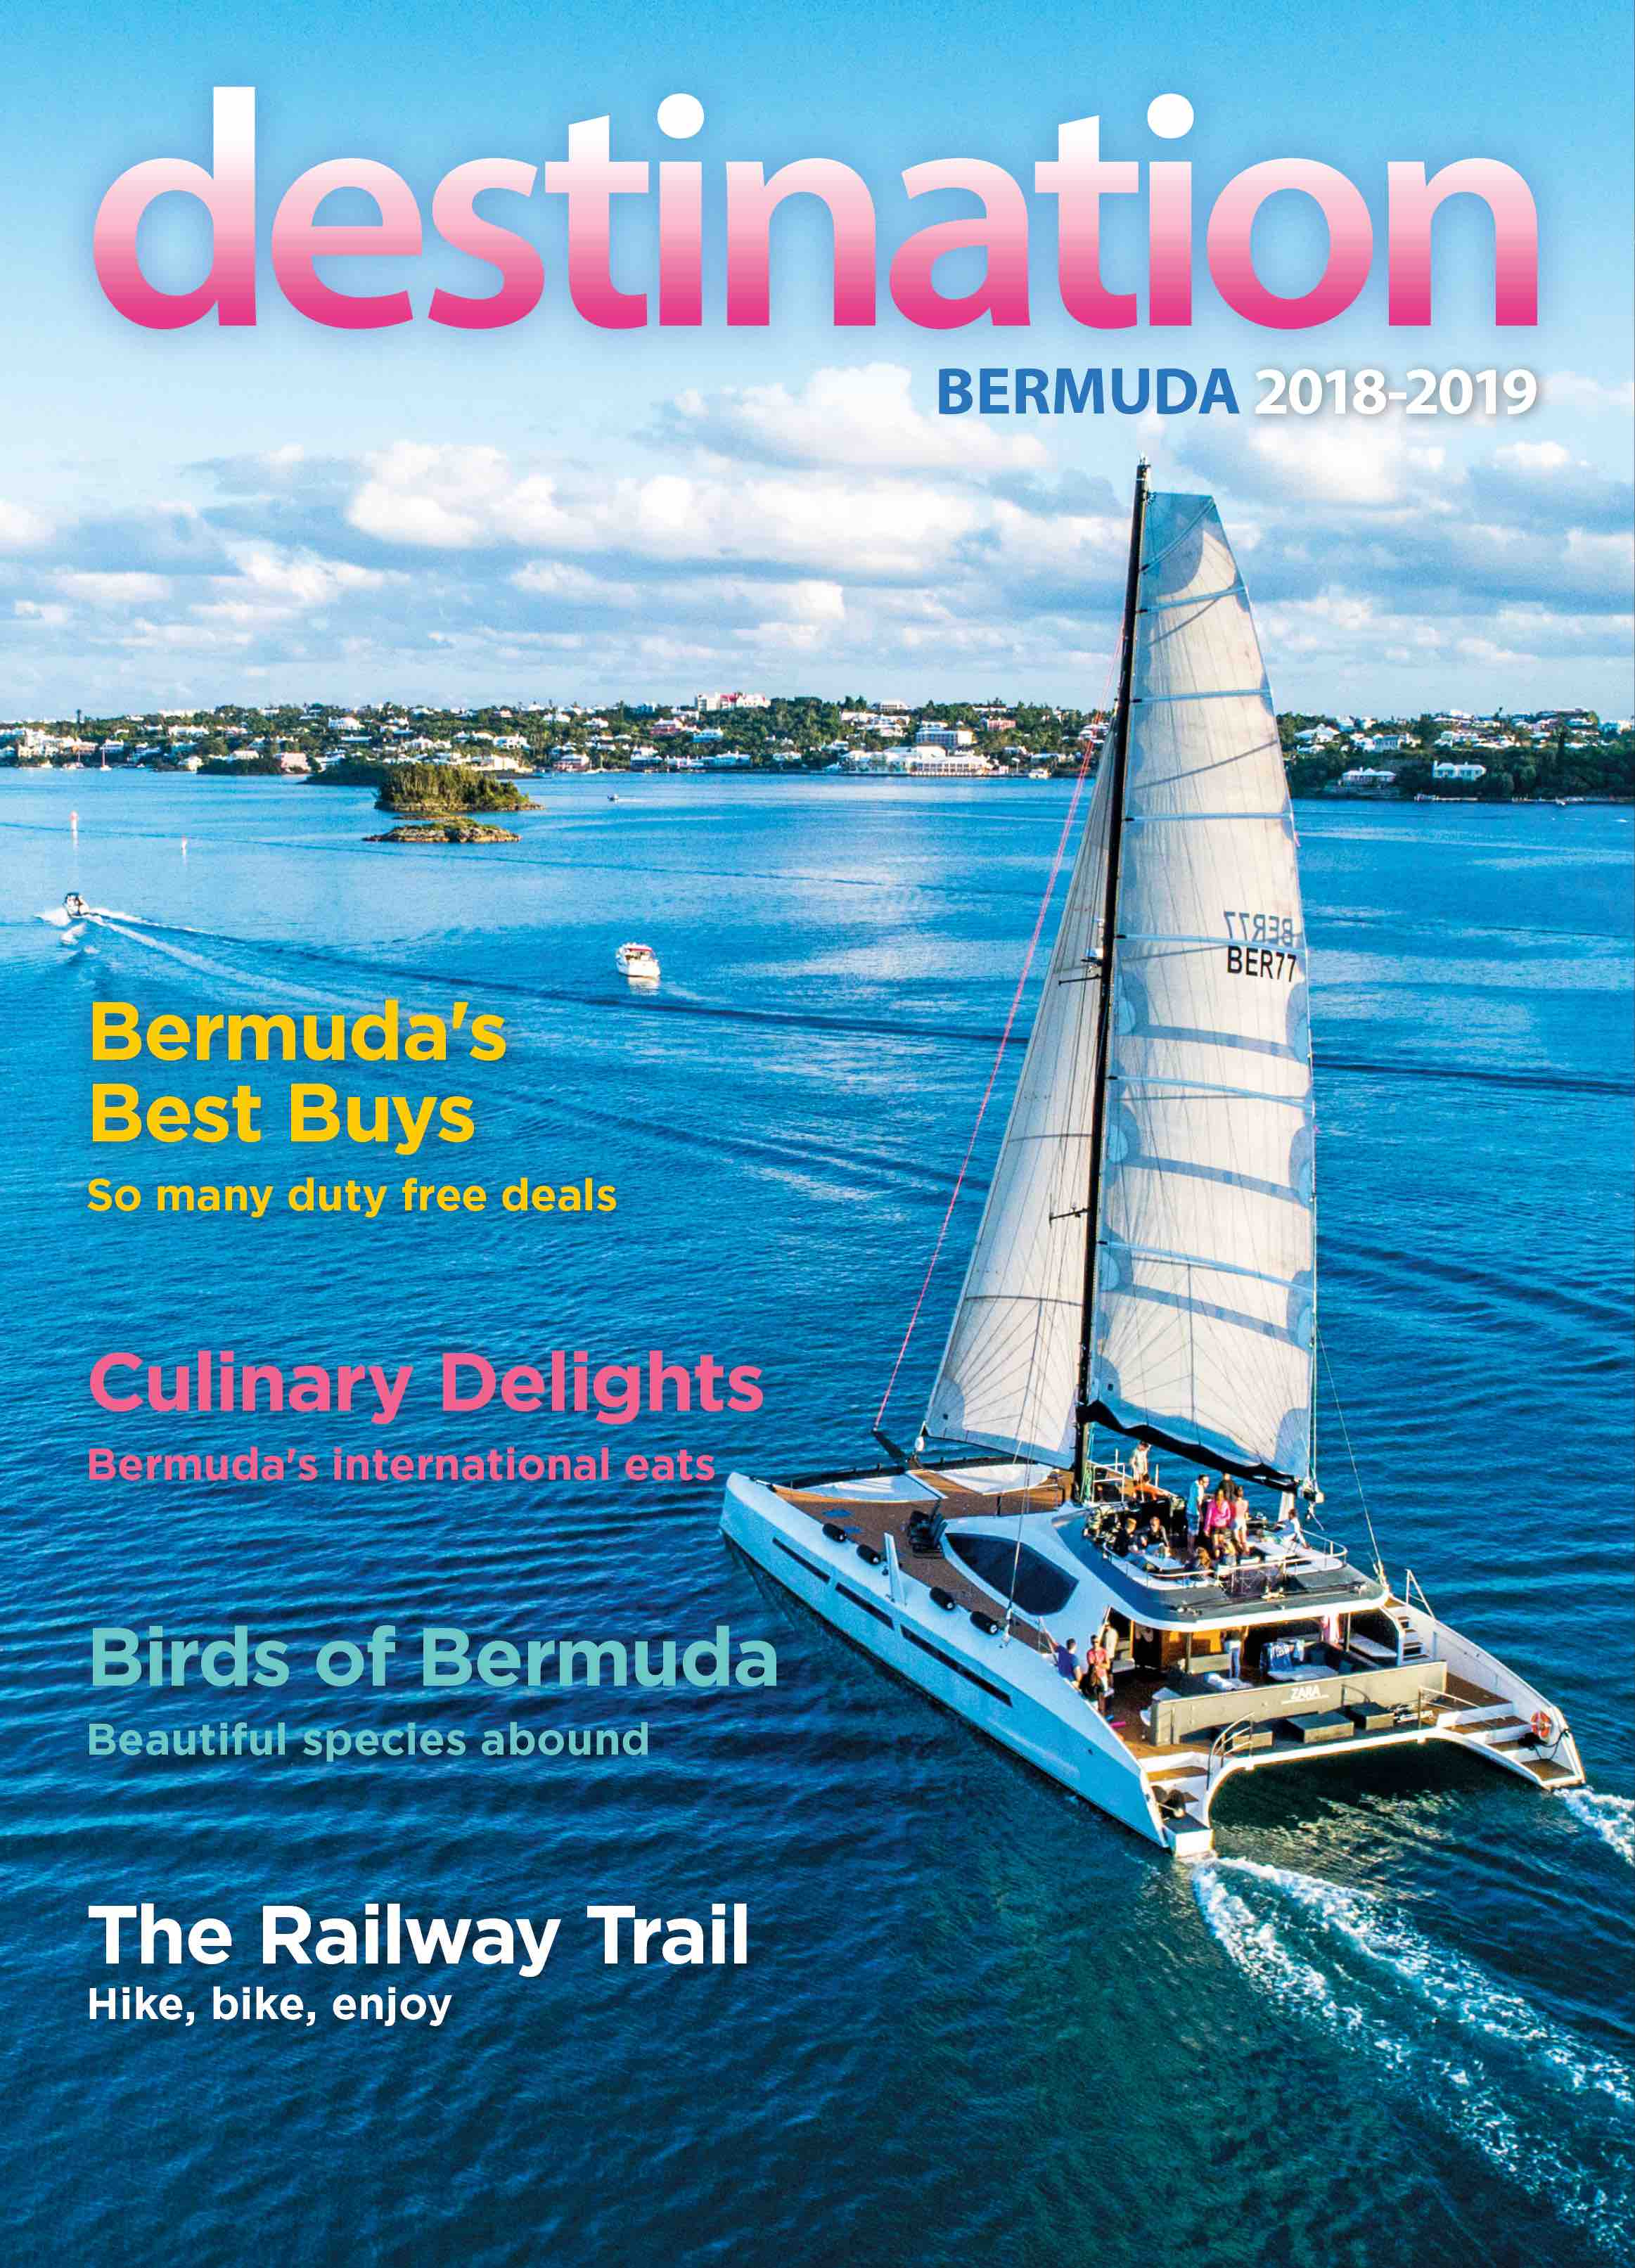 Destination Bermuda 2018